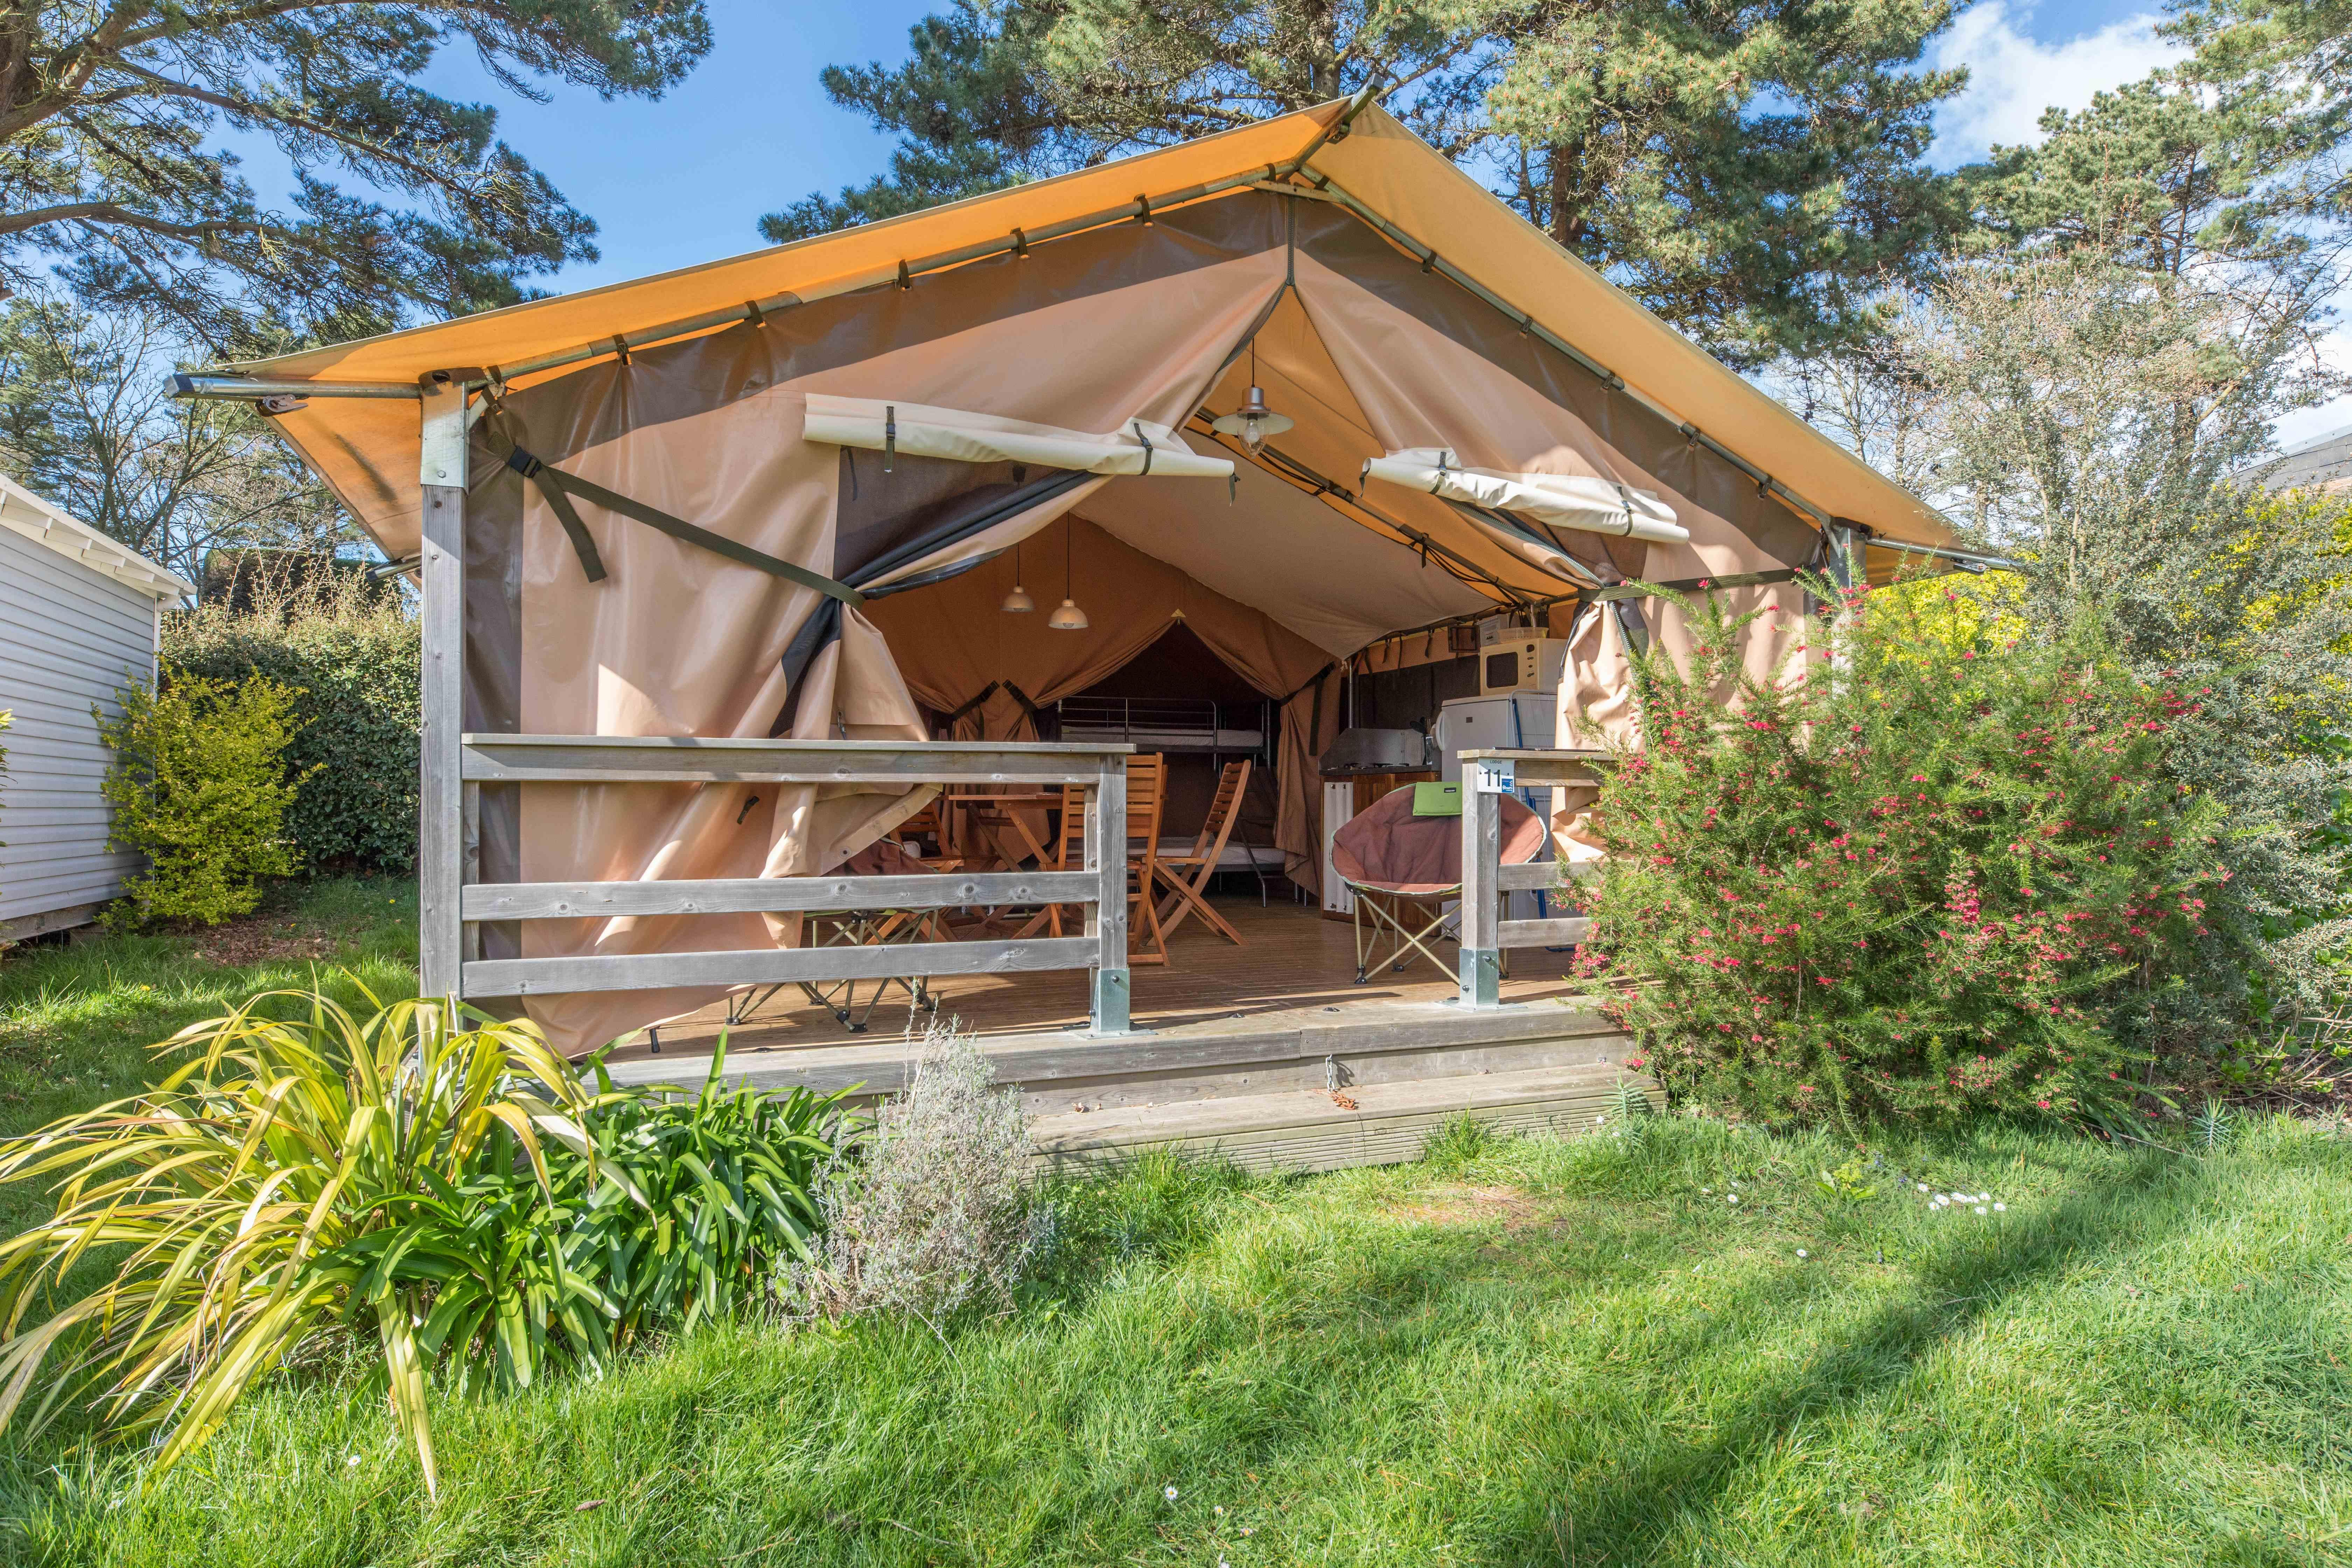 Accommodation - Tent Lodge Victoria Confort Insolite 30M² (2 Bedrooms) + Covered Terrace - Camping Paradis Les Capucines